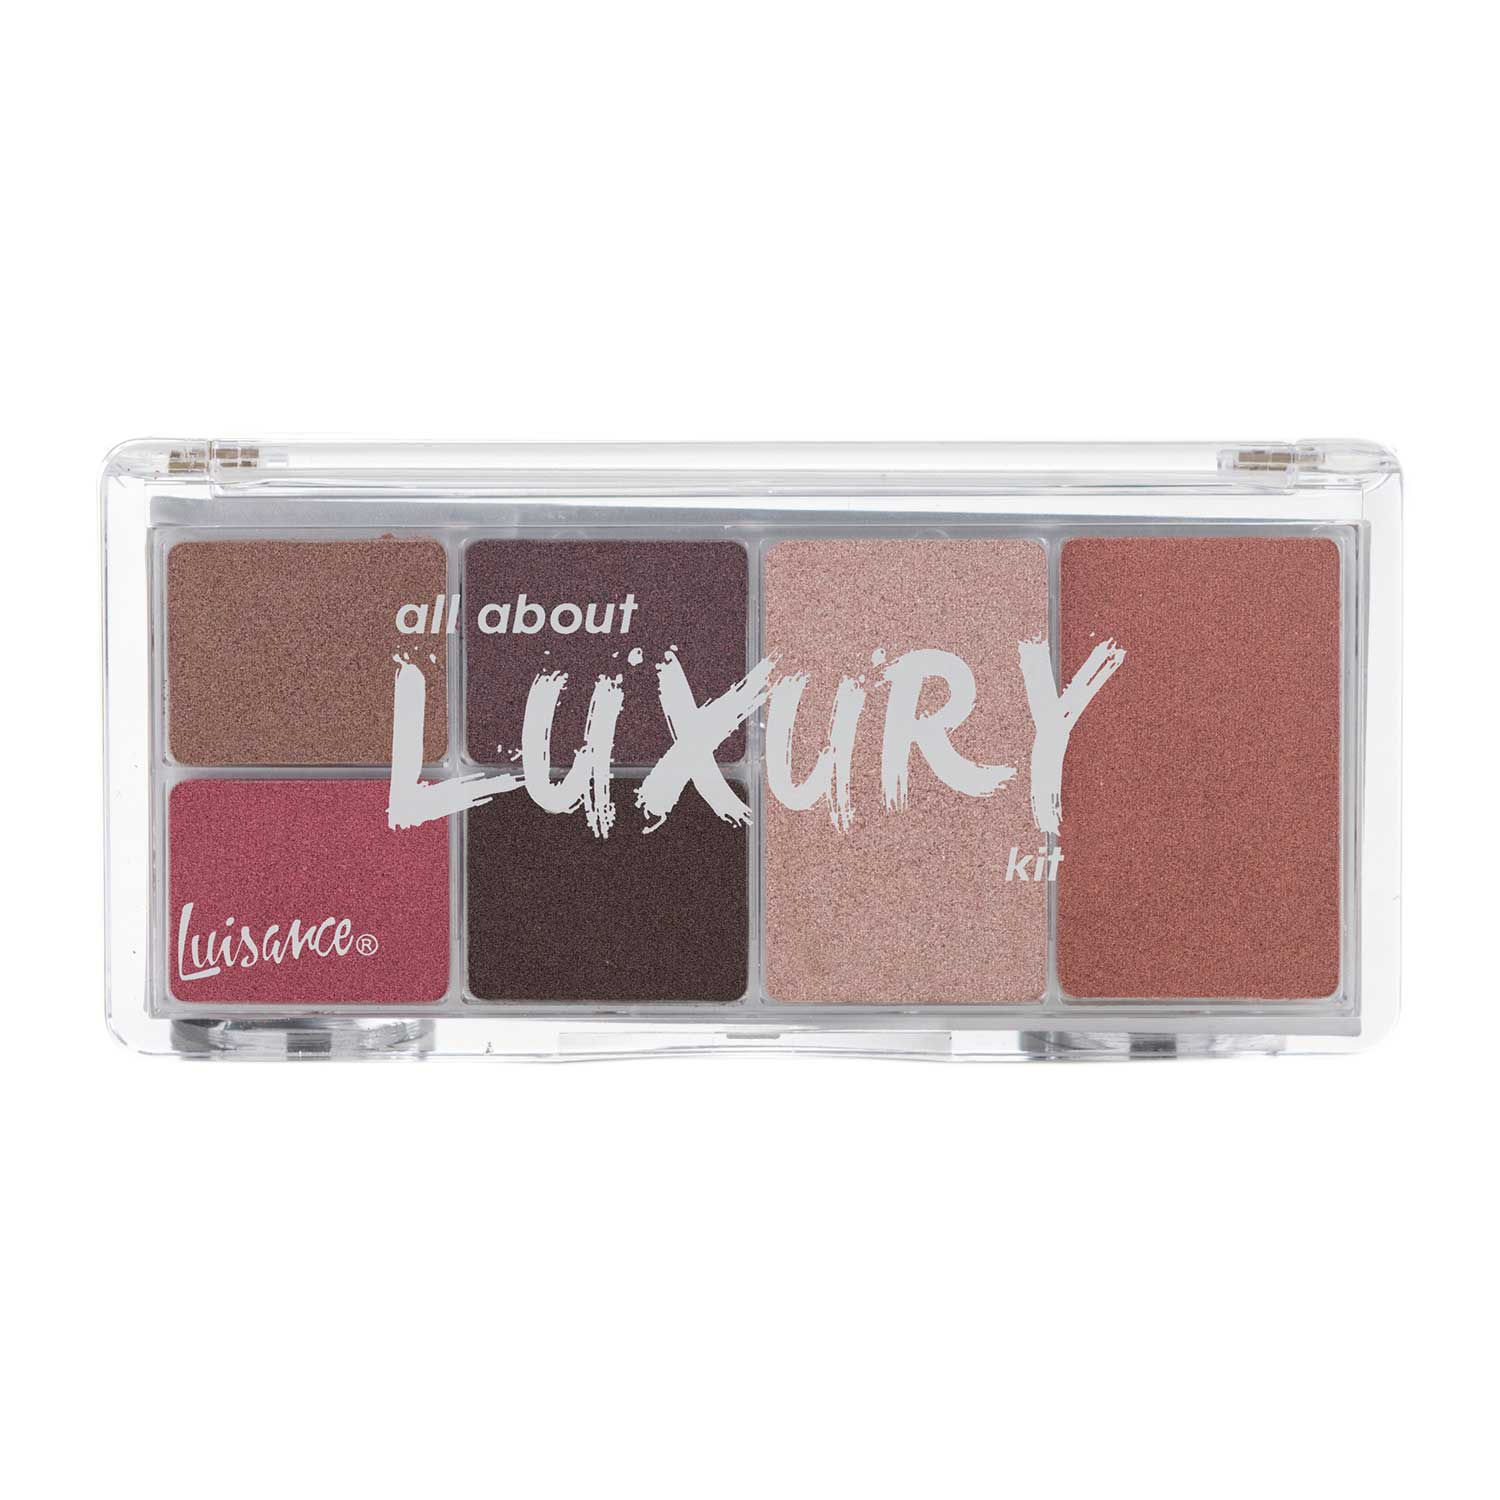 Paleta de Maquiagem All About Luxury Kit Luisance L2020 Cor C